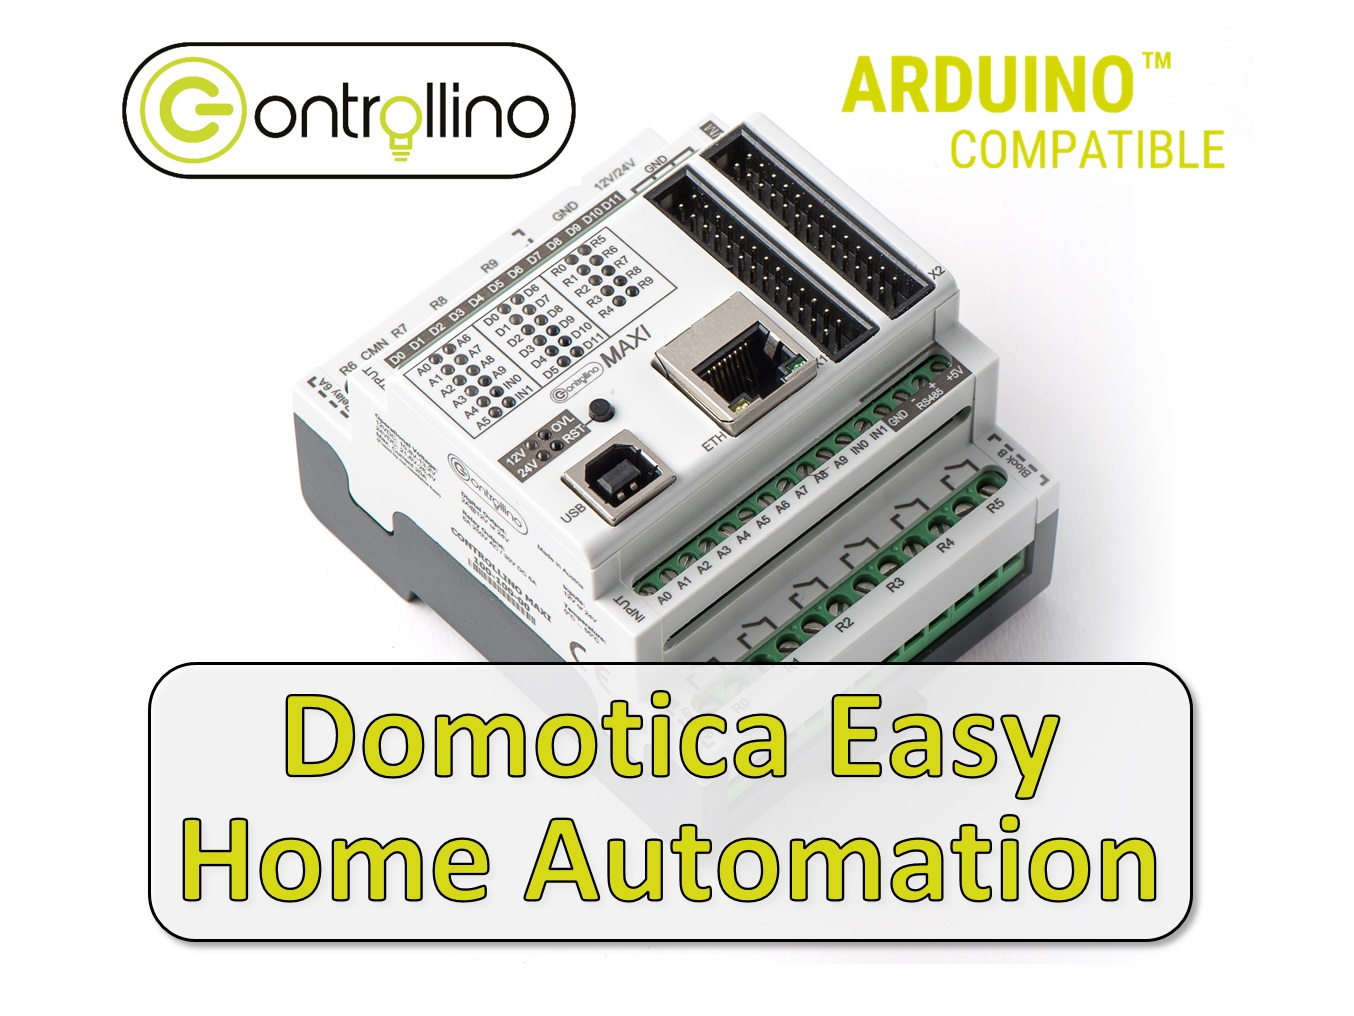 Domotica Easy Home Automation by Mirko Iaci - powered by CONTROLLINO